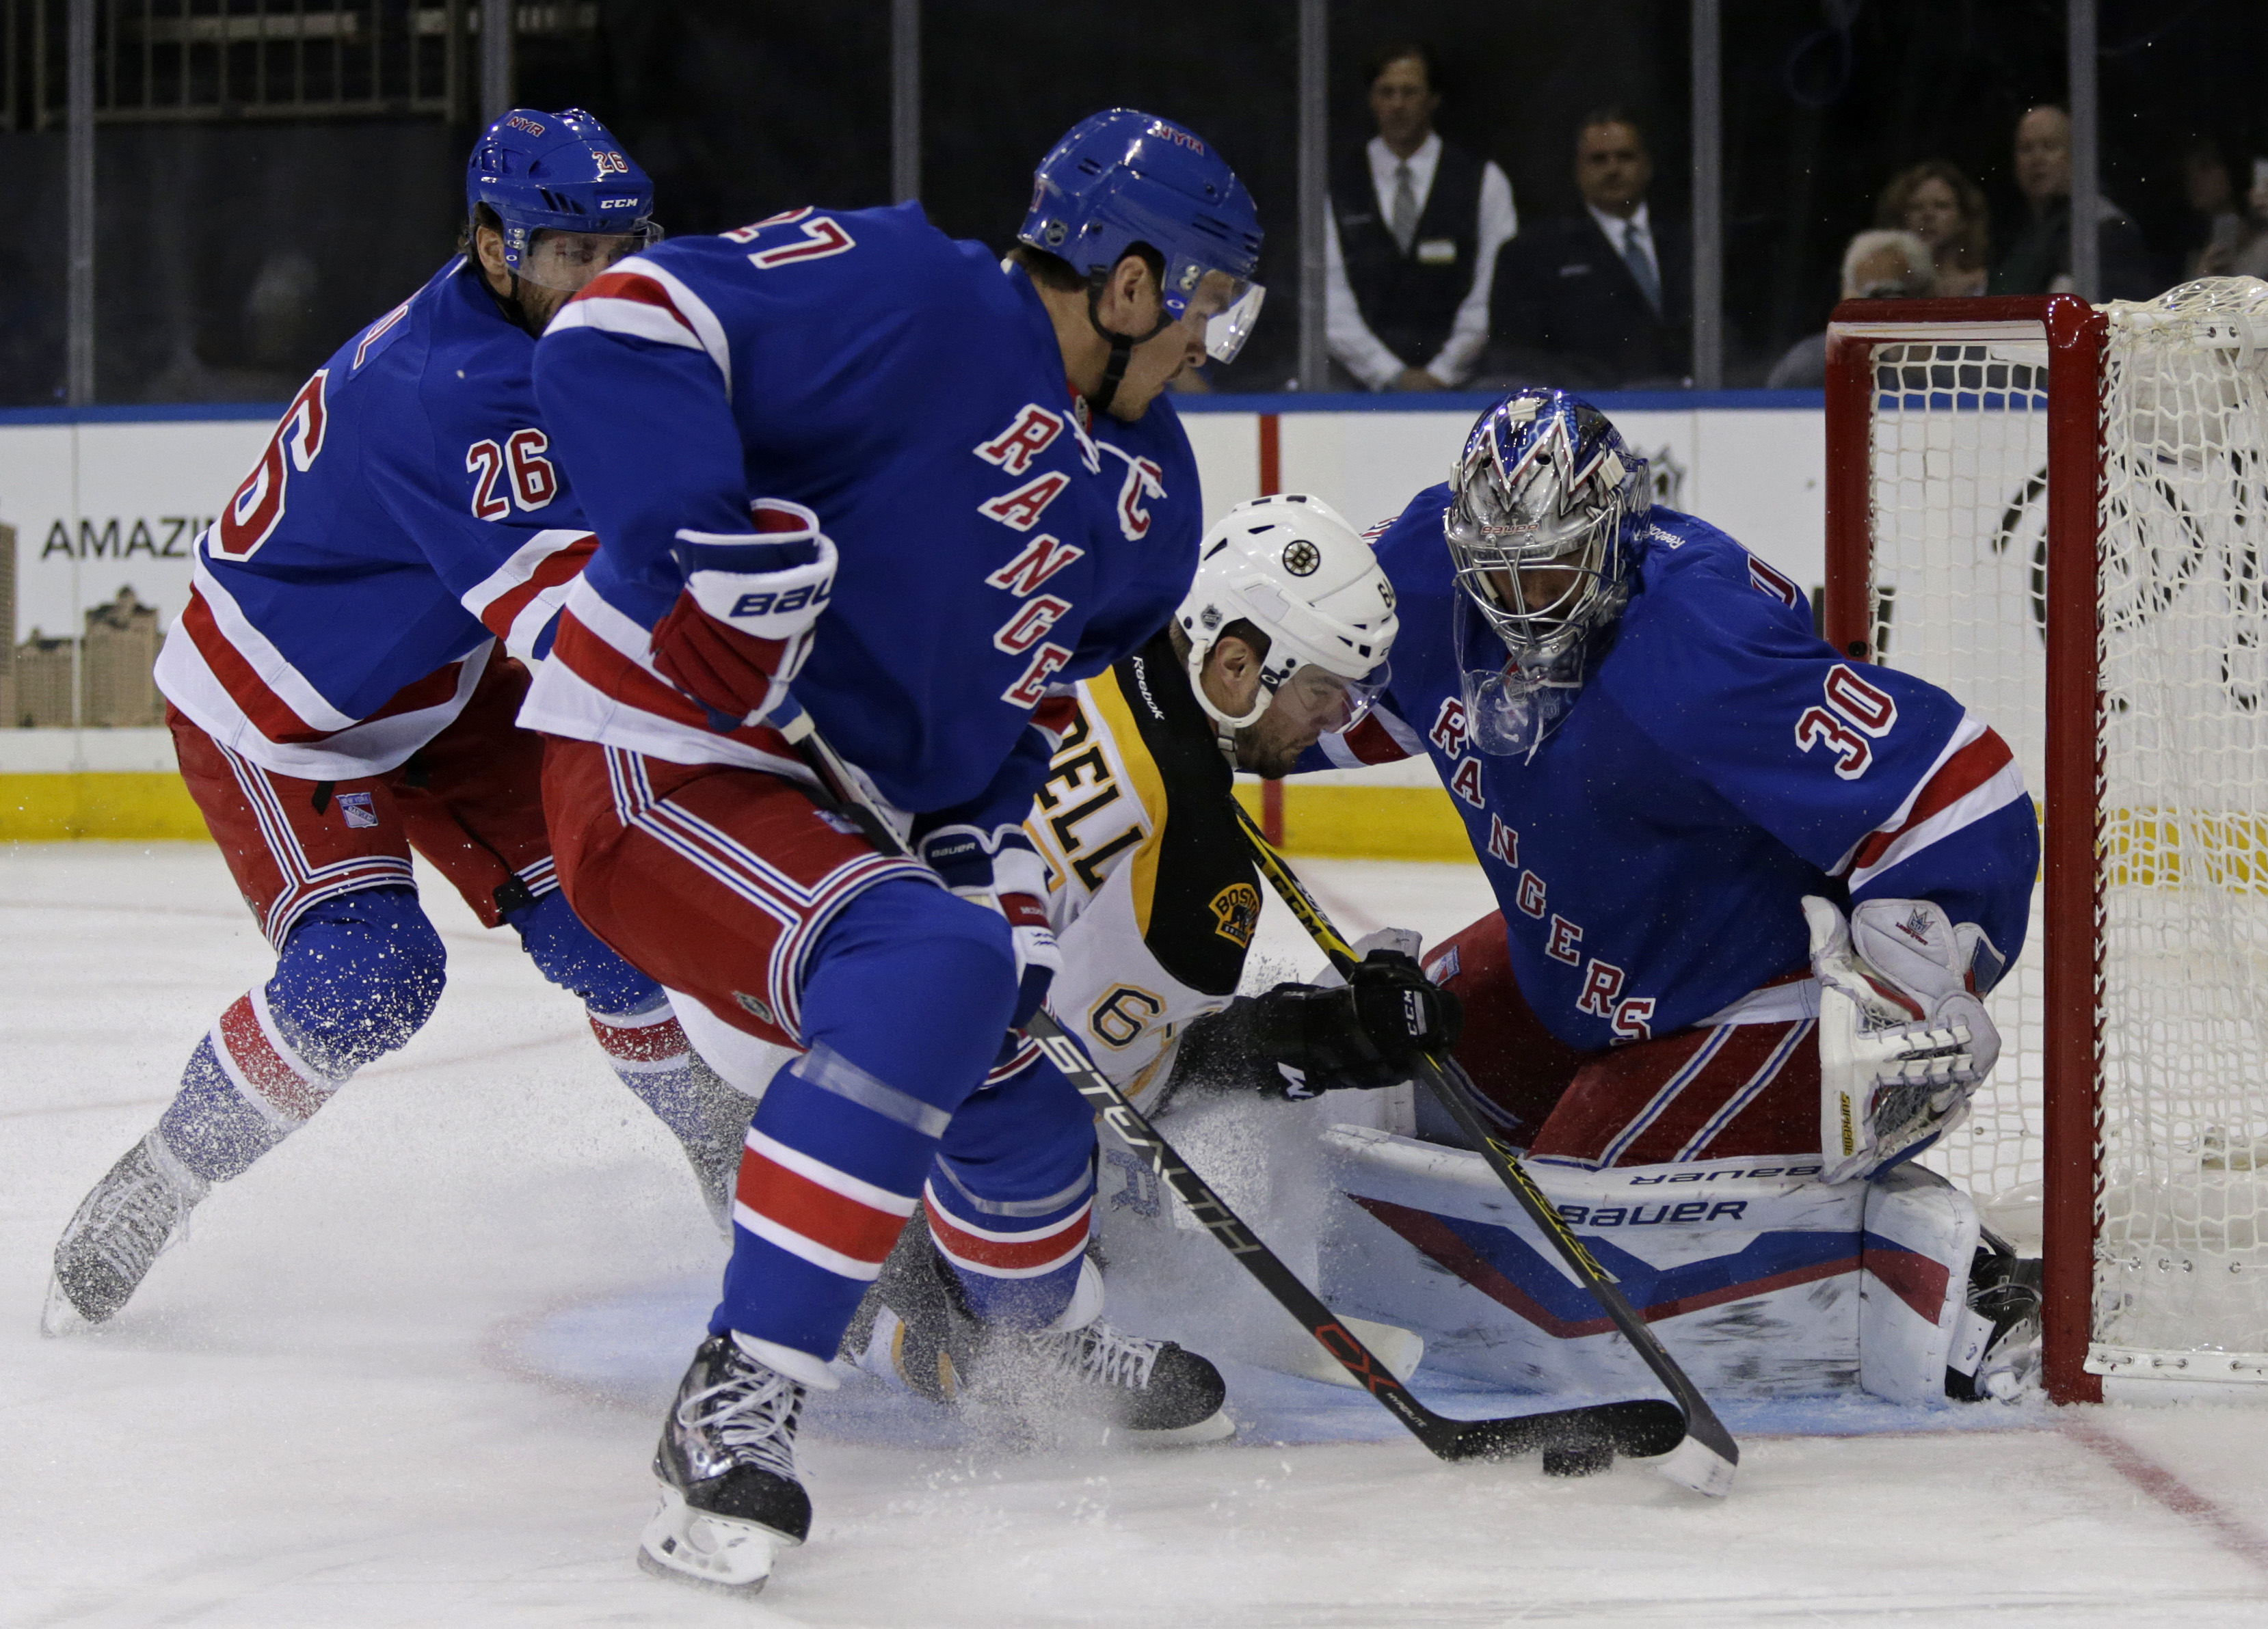 New York Rangers goalie Henrik Lundqvist (30) makes a save on a shot by Boston Bruins right wing Tyler Randell (64) as Rangers defenseman Ryan McDonagh (27) looks on during the first period of an NHL preseason hockey game at Madison Square Garden in New Y